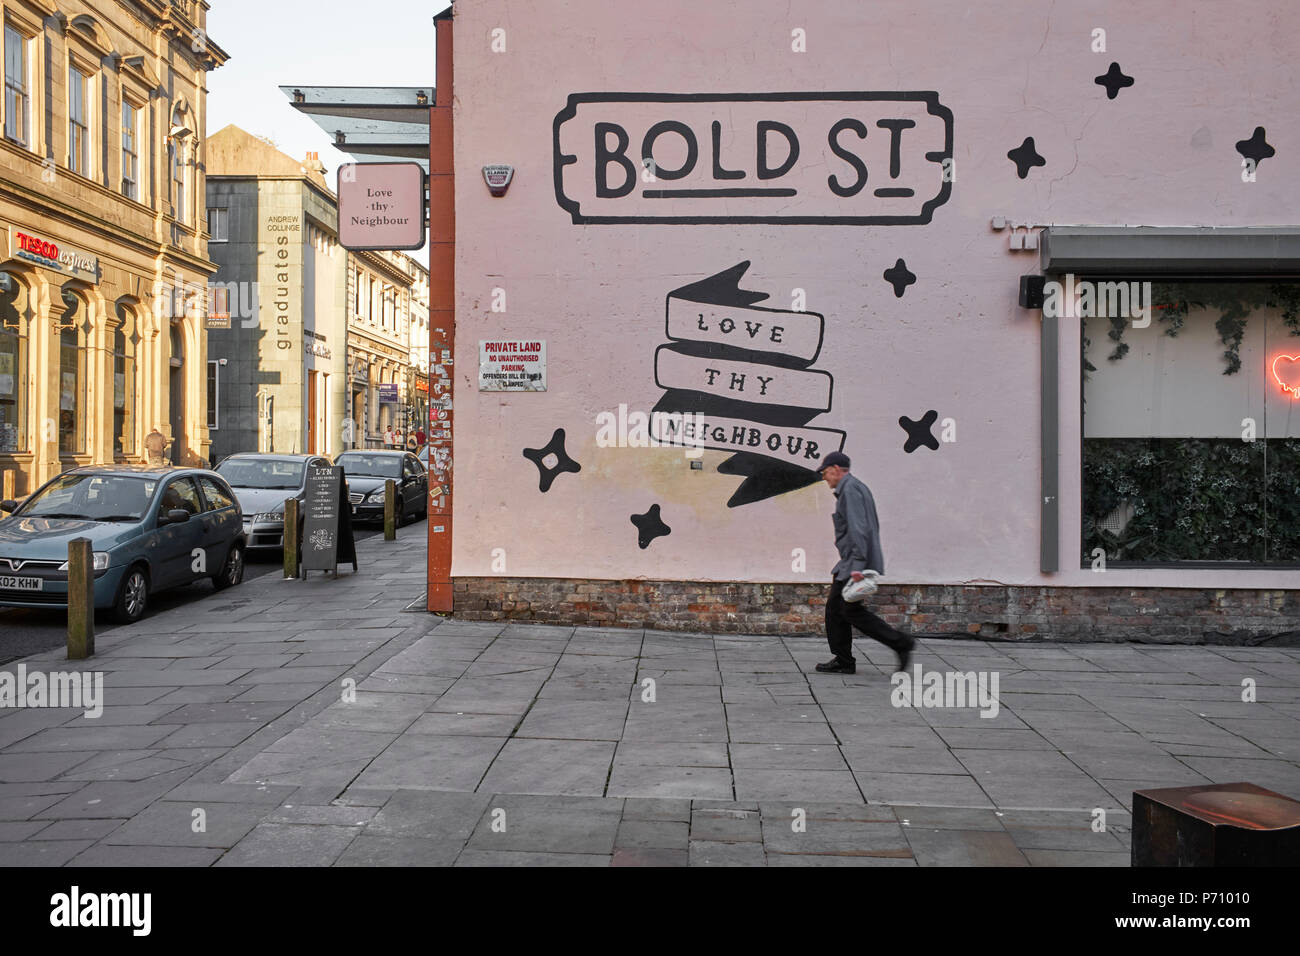 Side of Love thy neighbour bar, cafe and restaurant in Bold Street, Liverpool - Stock Image